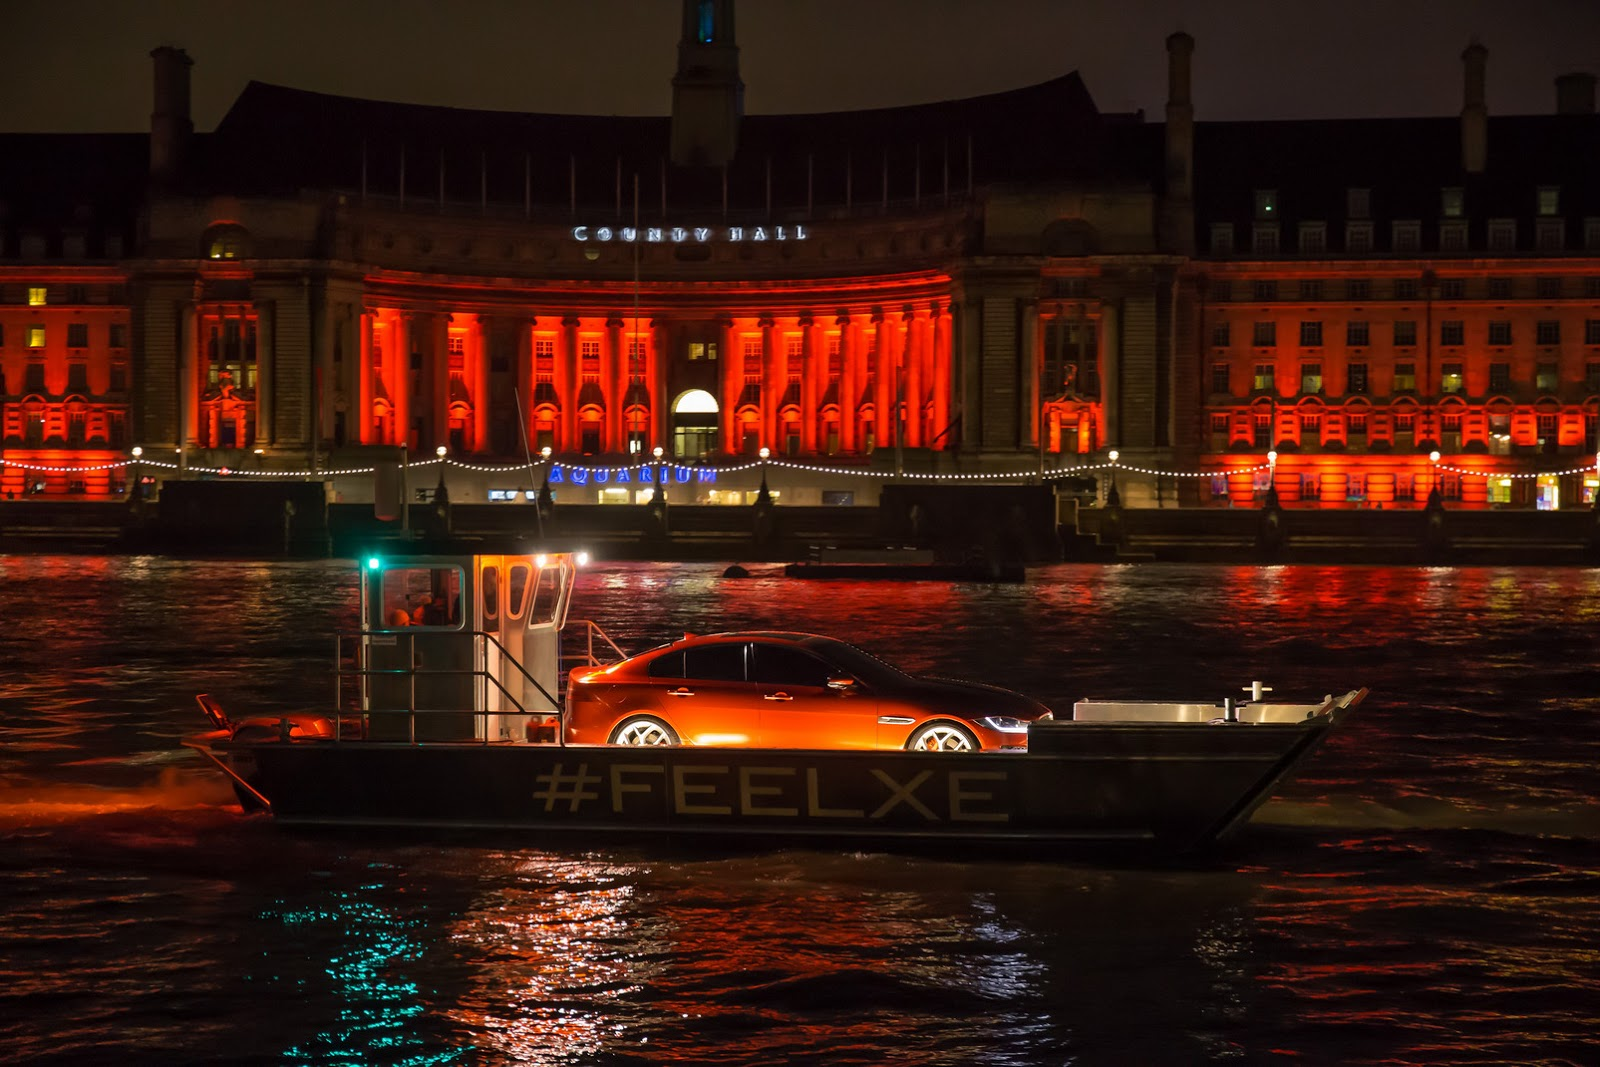 New-2016-Jaguar-XE-officially-revealed-Images-and-details-5.jpg.pagespeed.ce.-ThY0AZGBg